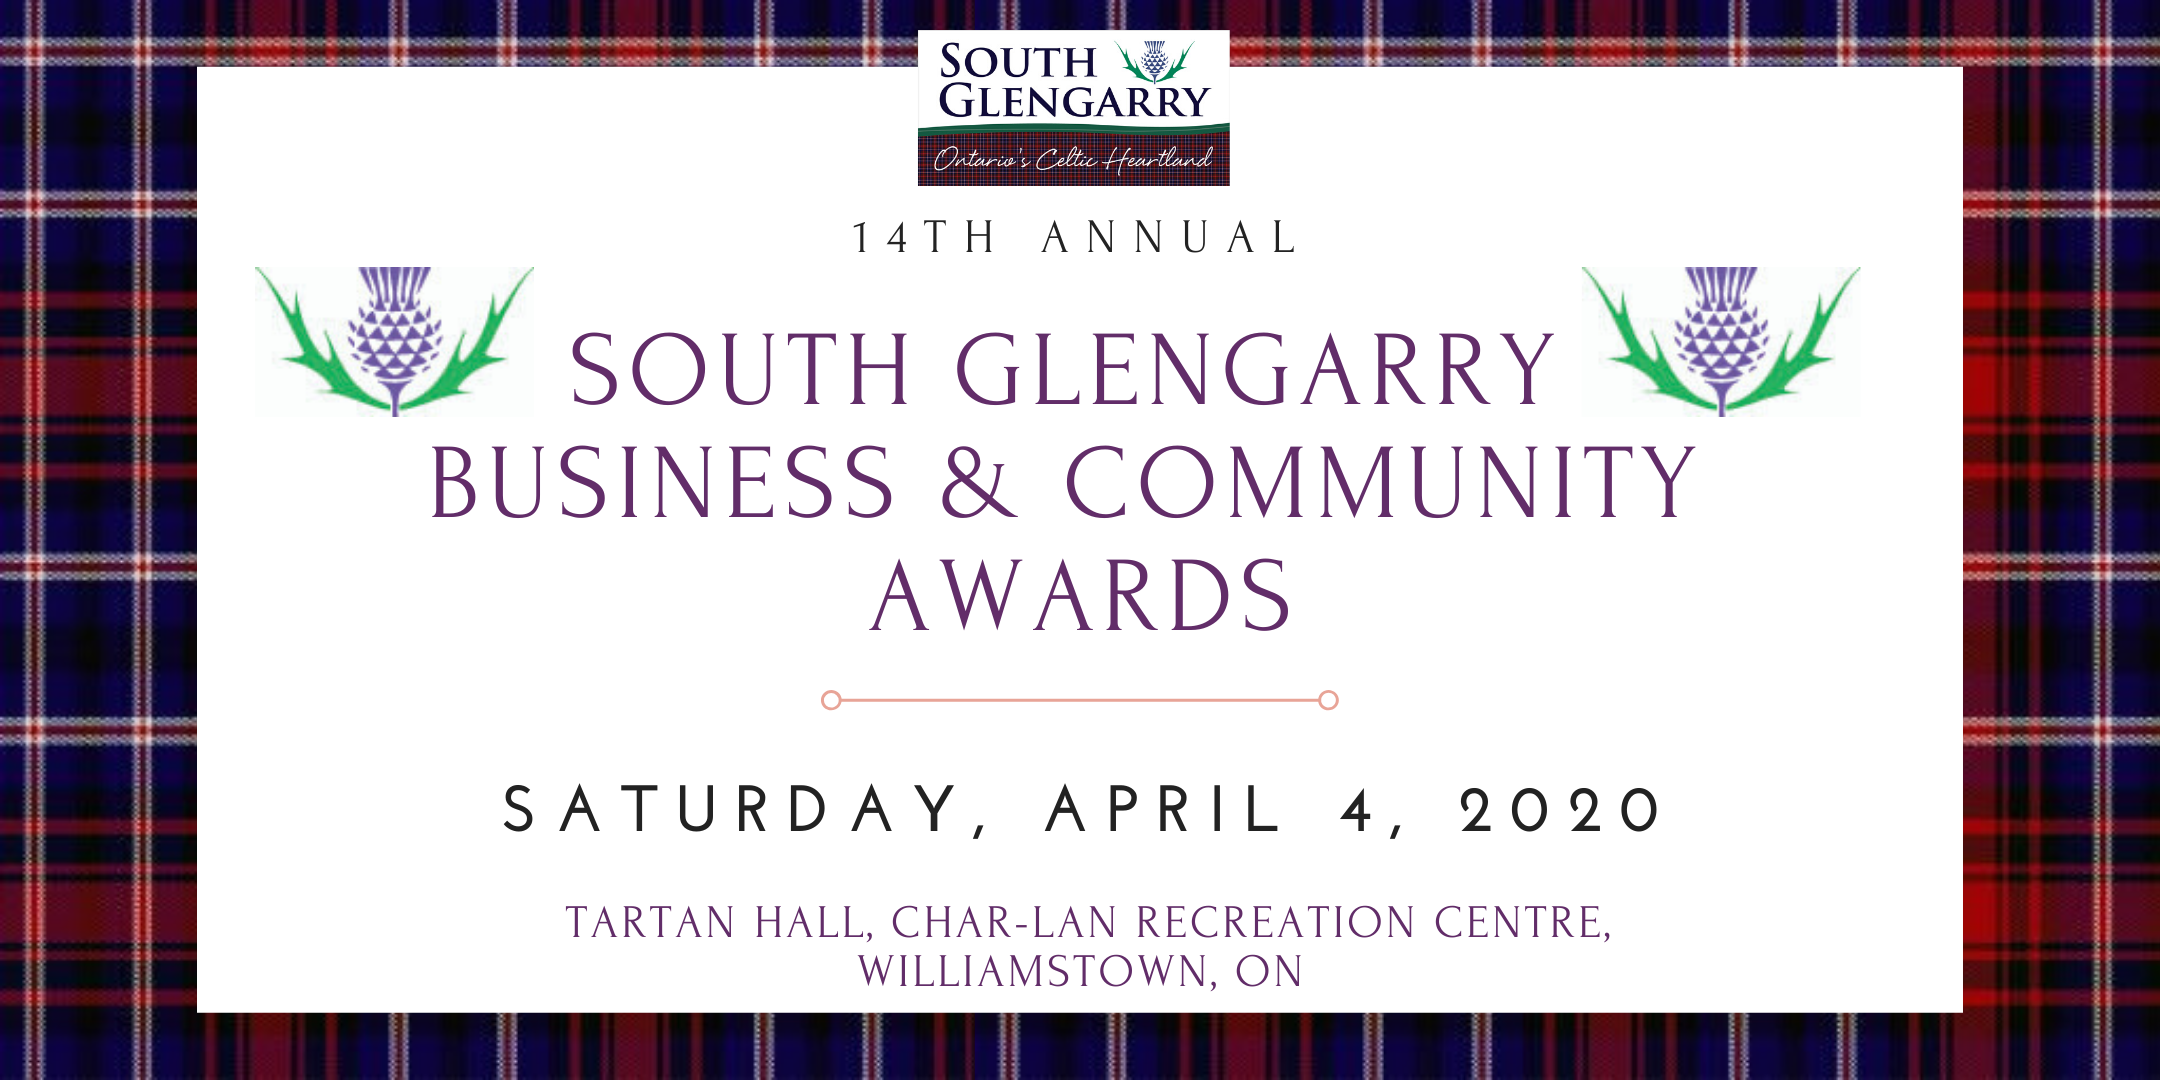 Image depicts South Glengarry Tartan with Thistle Logo announcing the 2020 Business and Community Awards on April 4th